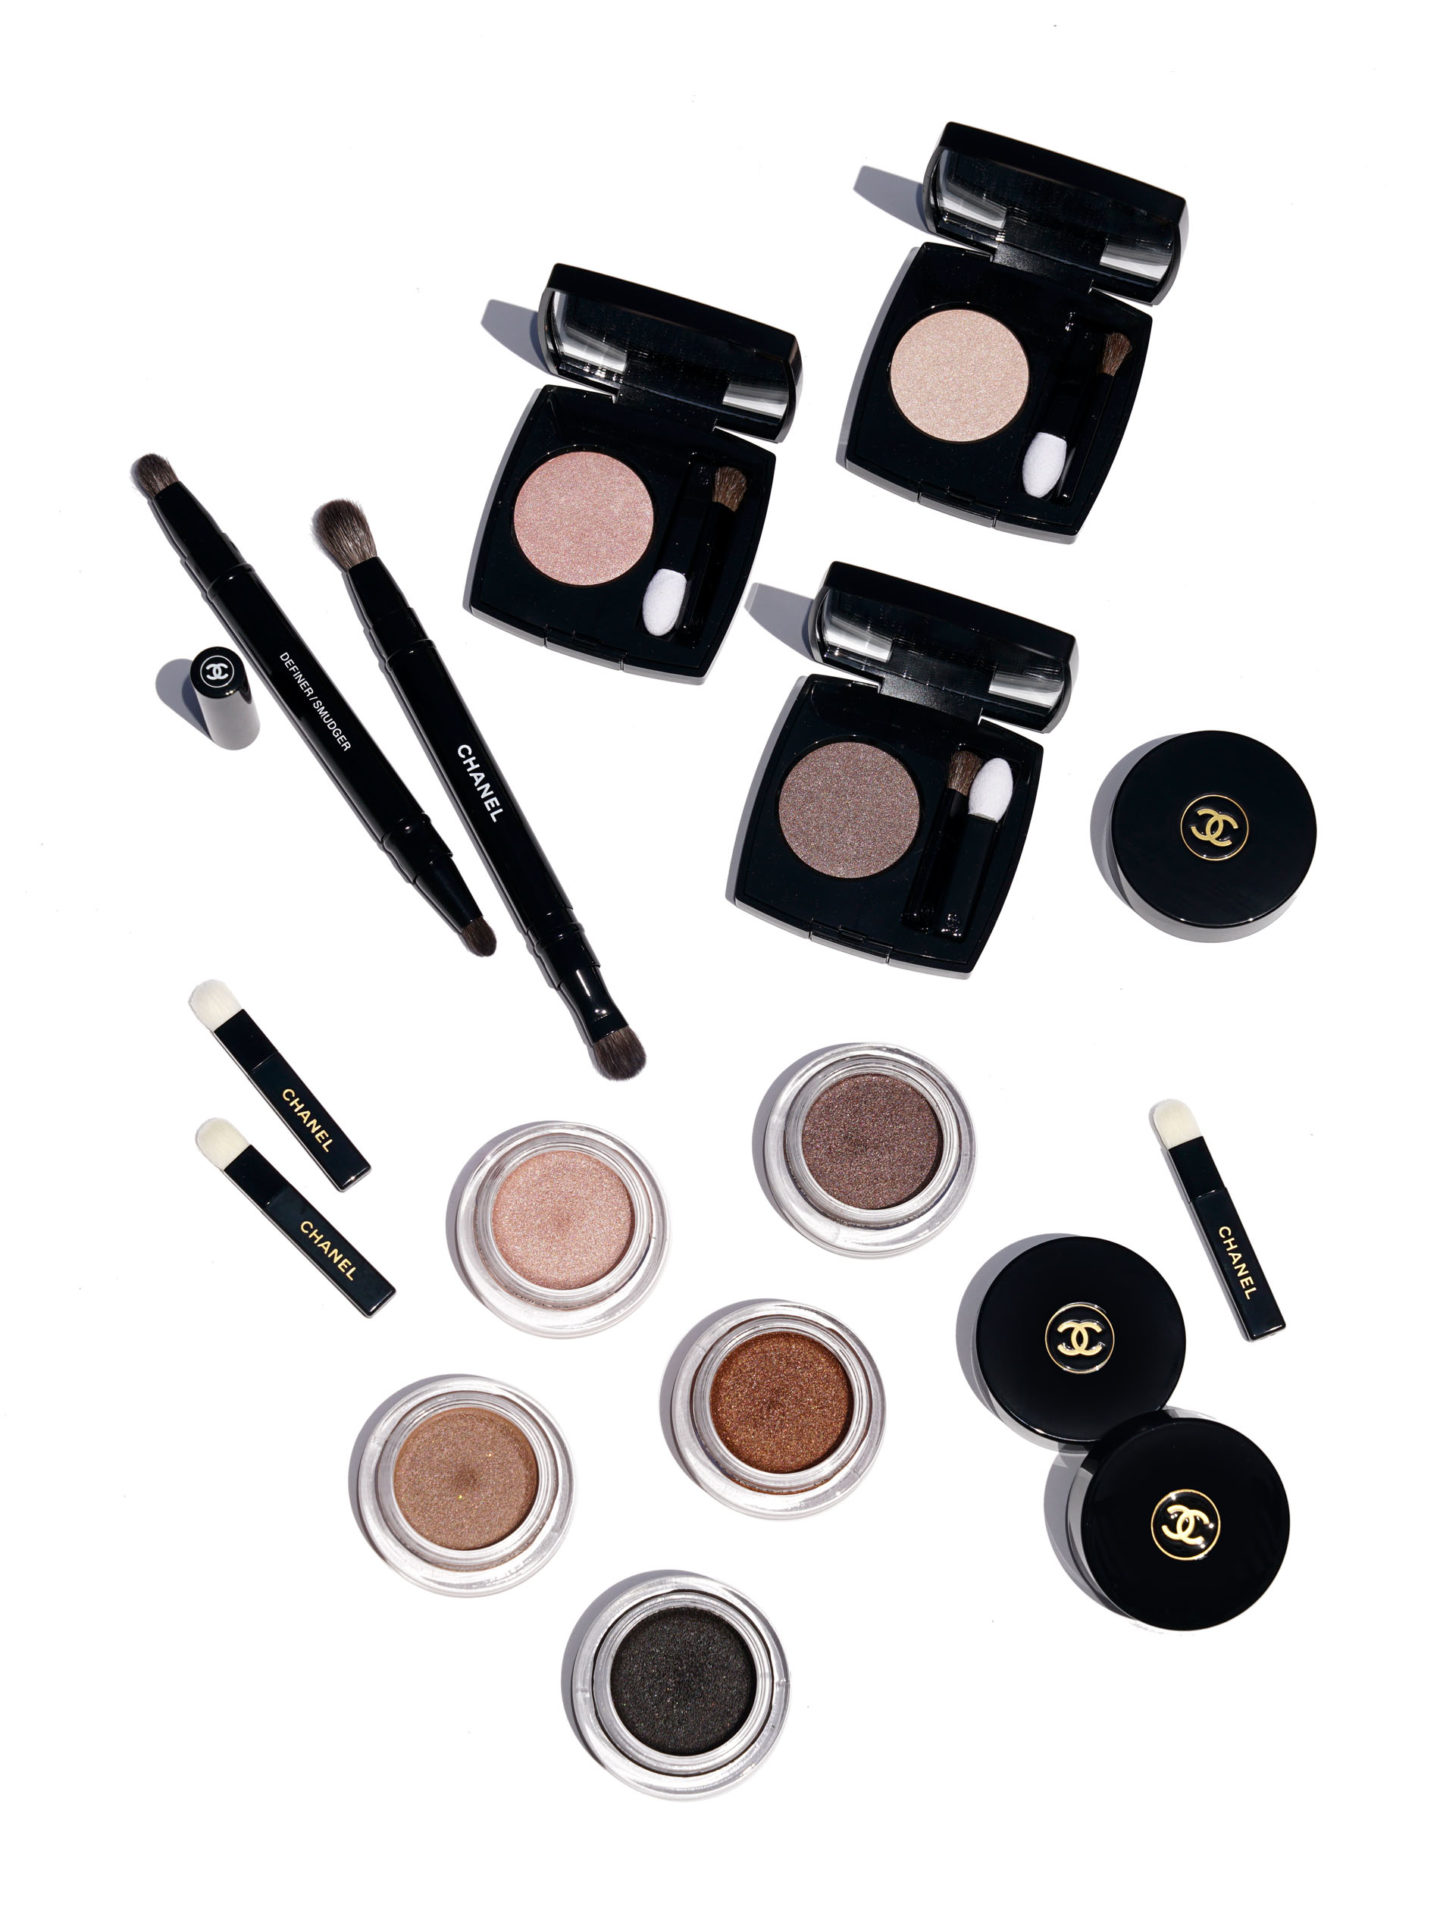 Chanel Ombre Premiere Longwear Eyeshadows | The Beauty Look Book